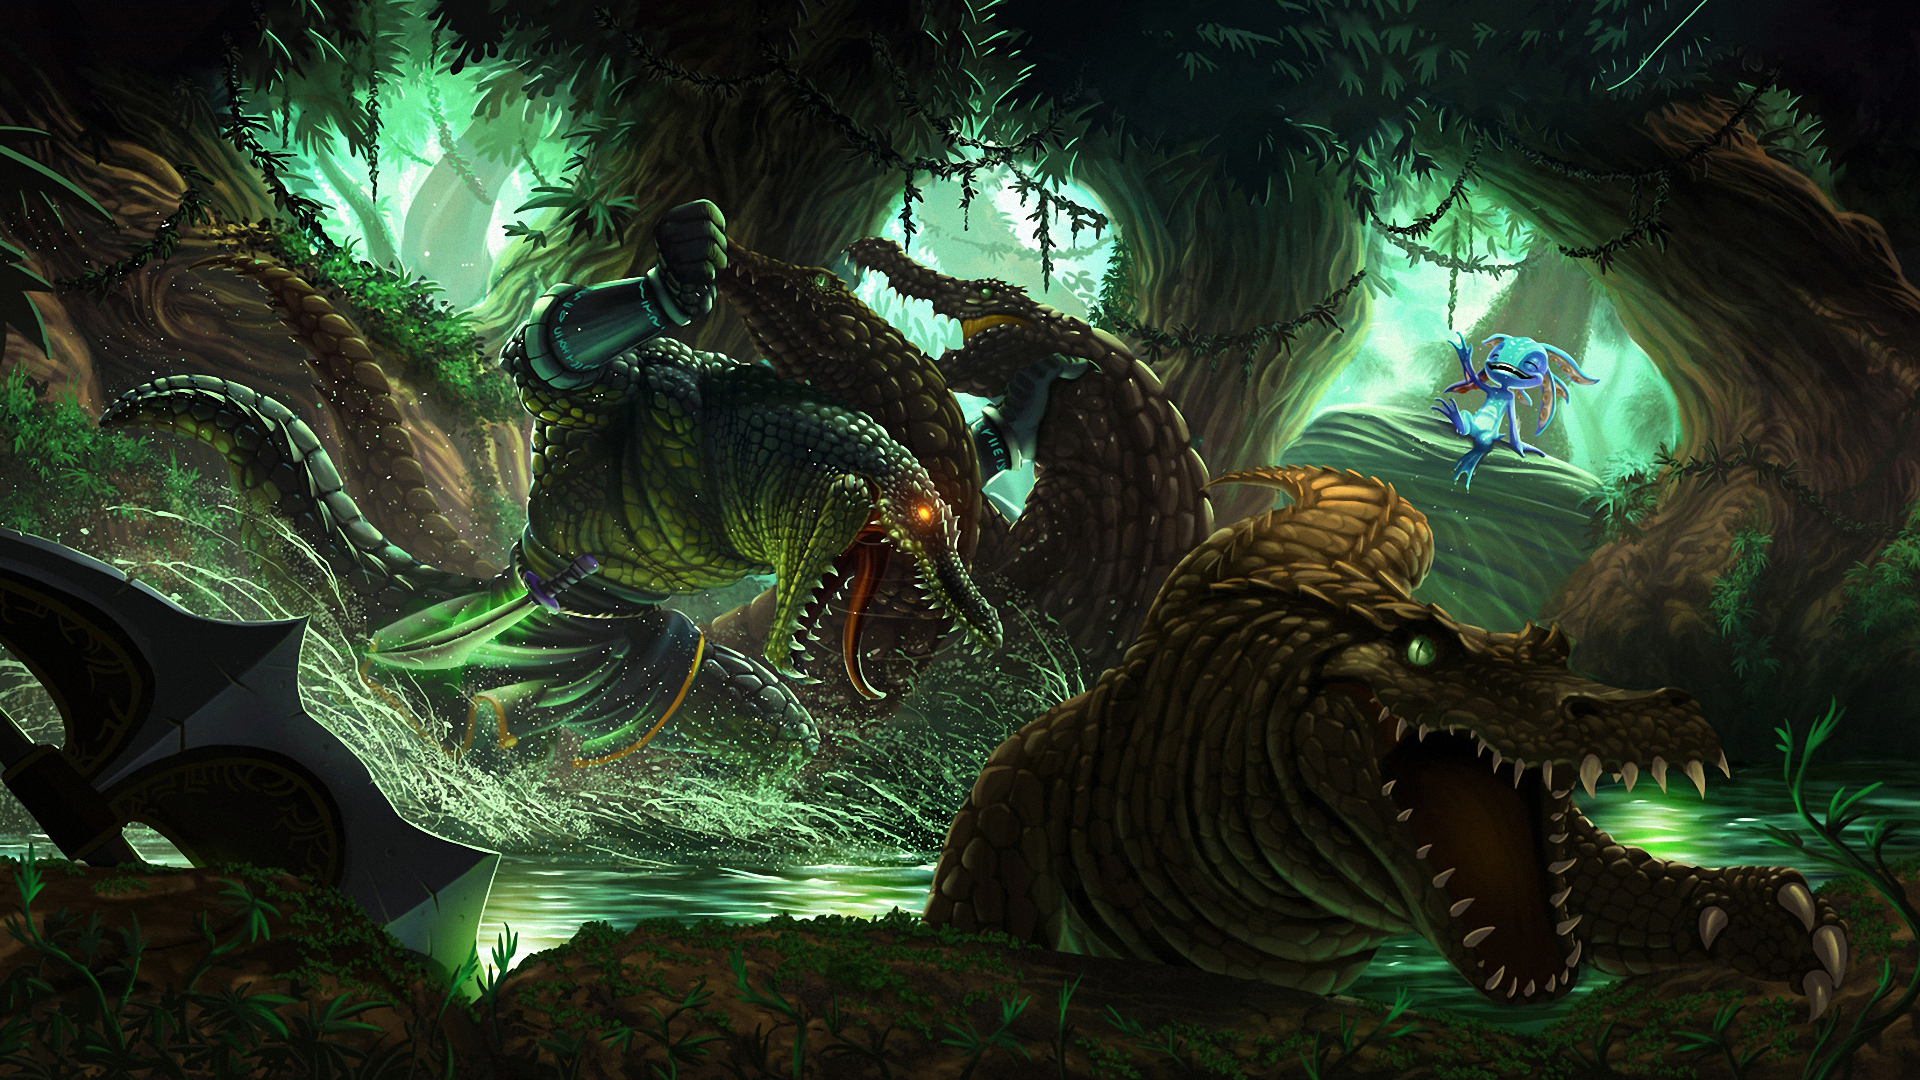 Renekton and Fizz League Of Legends Wallpapers HD 1920x1080